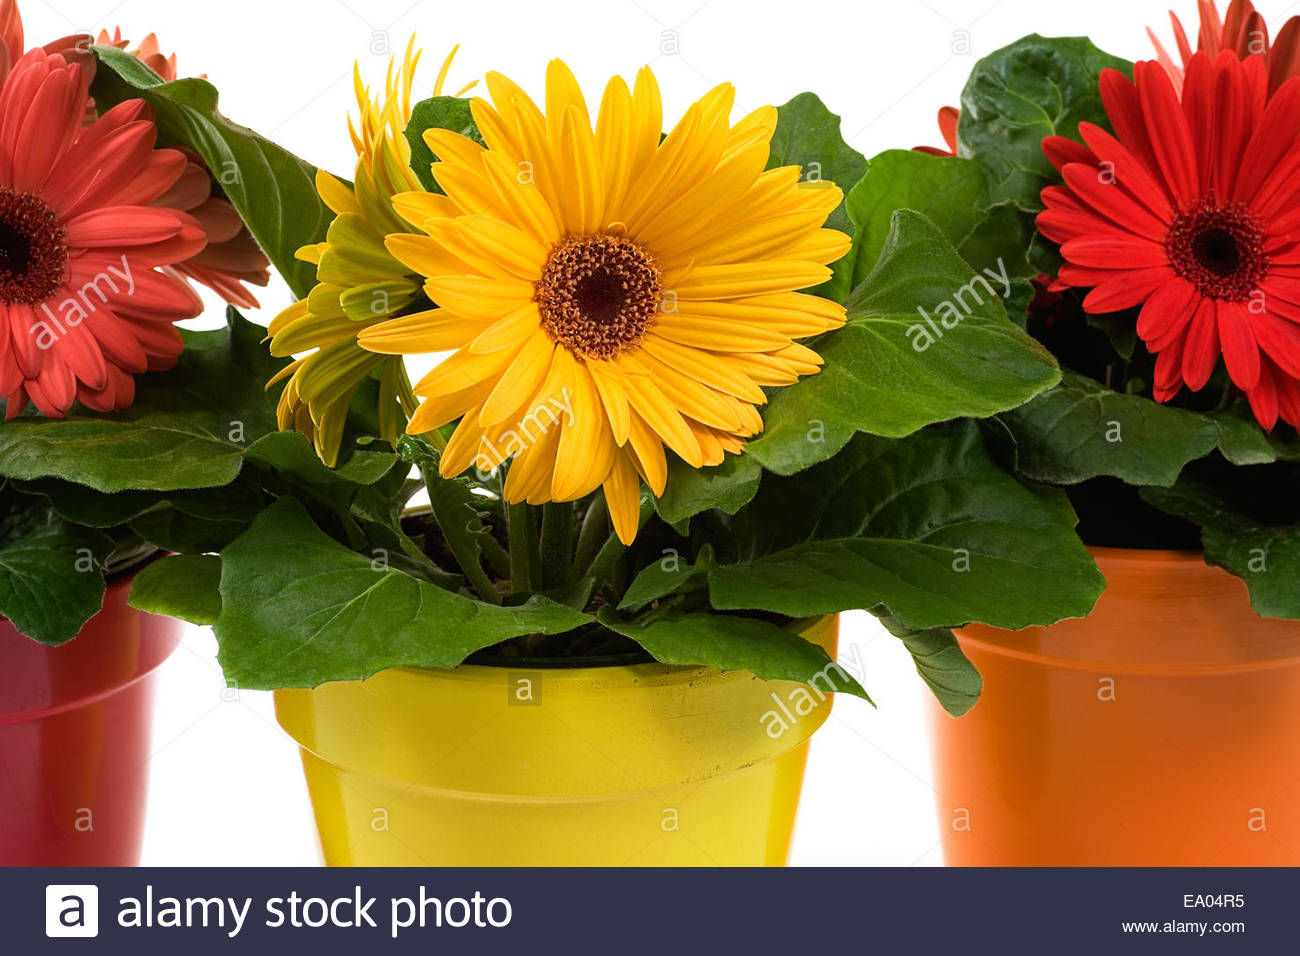 Plants for spring and summer - Stock Photo Yellow Red And Pink Potted Gerbera Daisy Plants For Spring Summer Or Mother S Day Themes